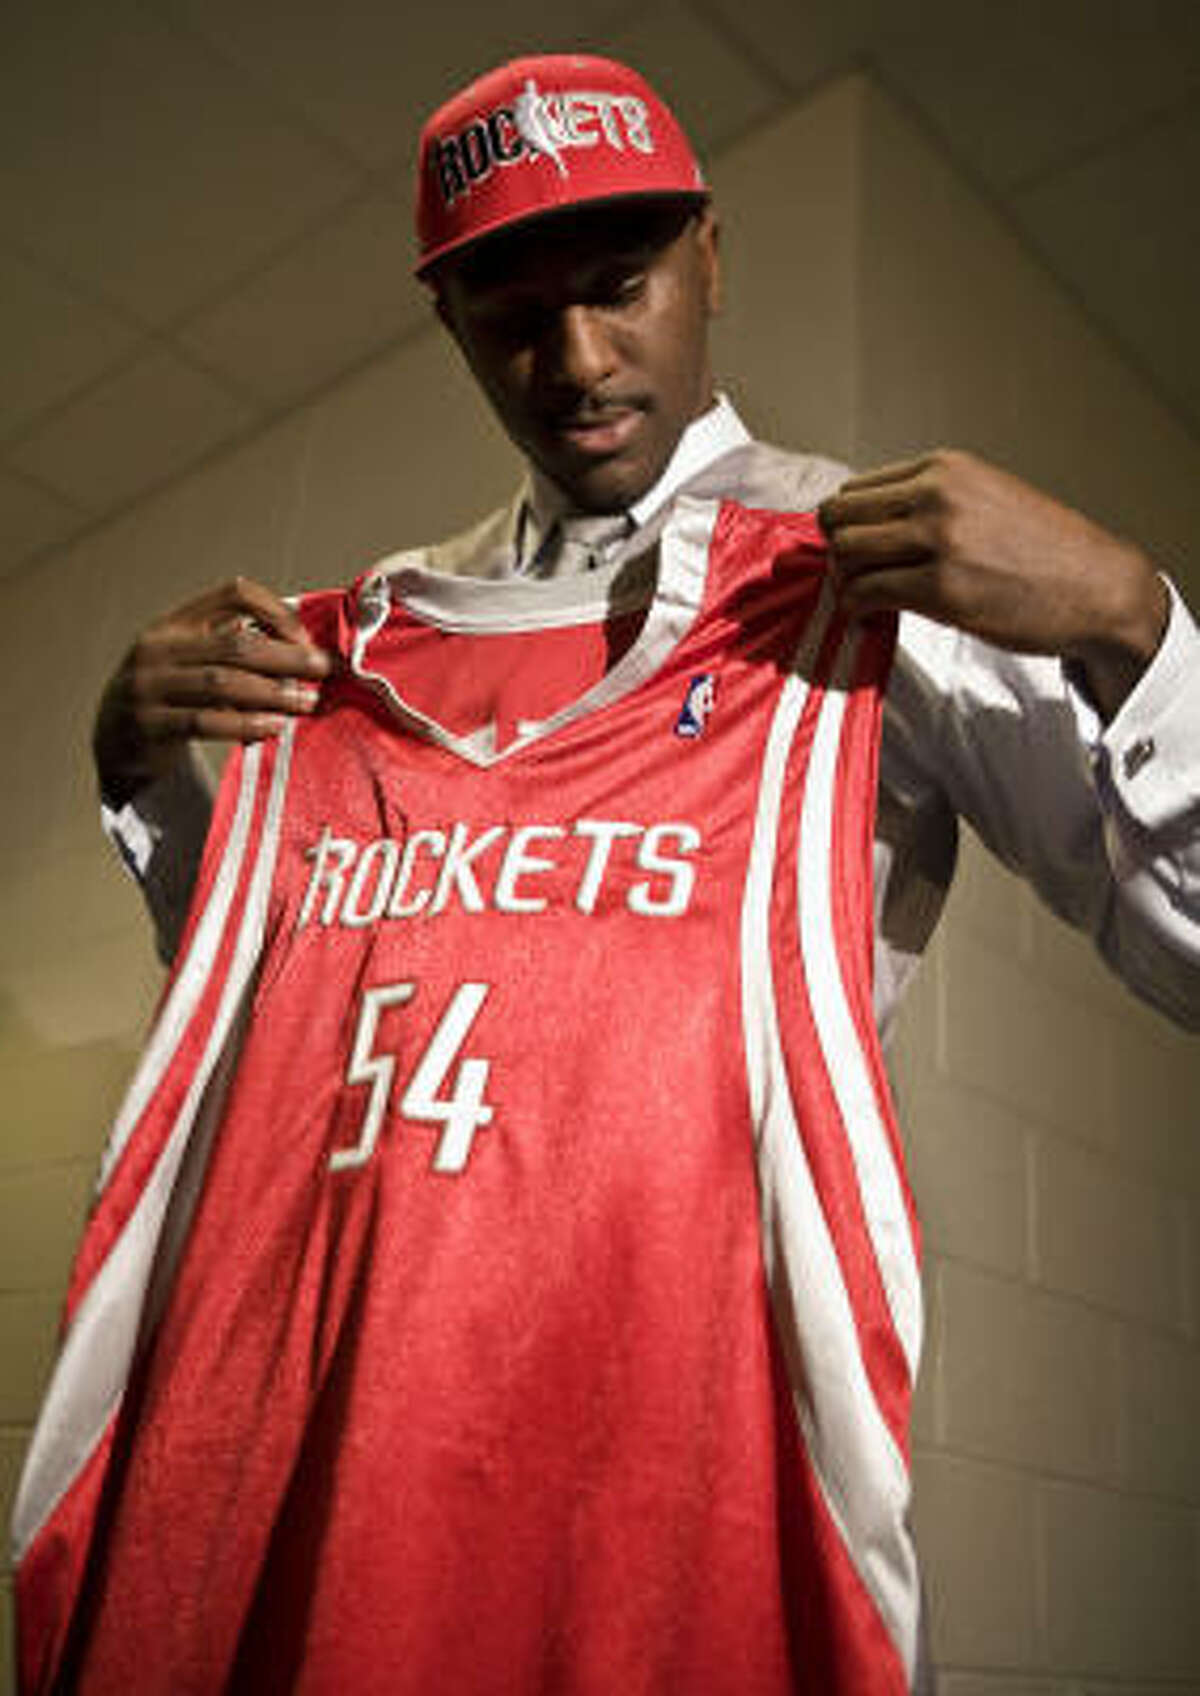 Patrick Patterson, who will wear No. 54, looks over his jersey.